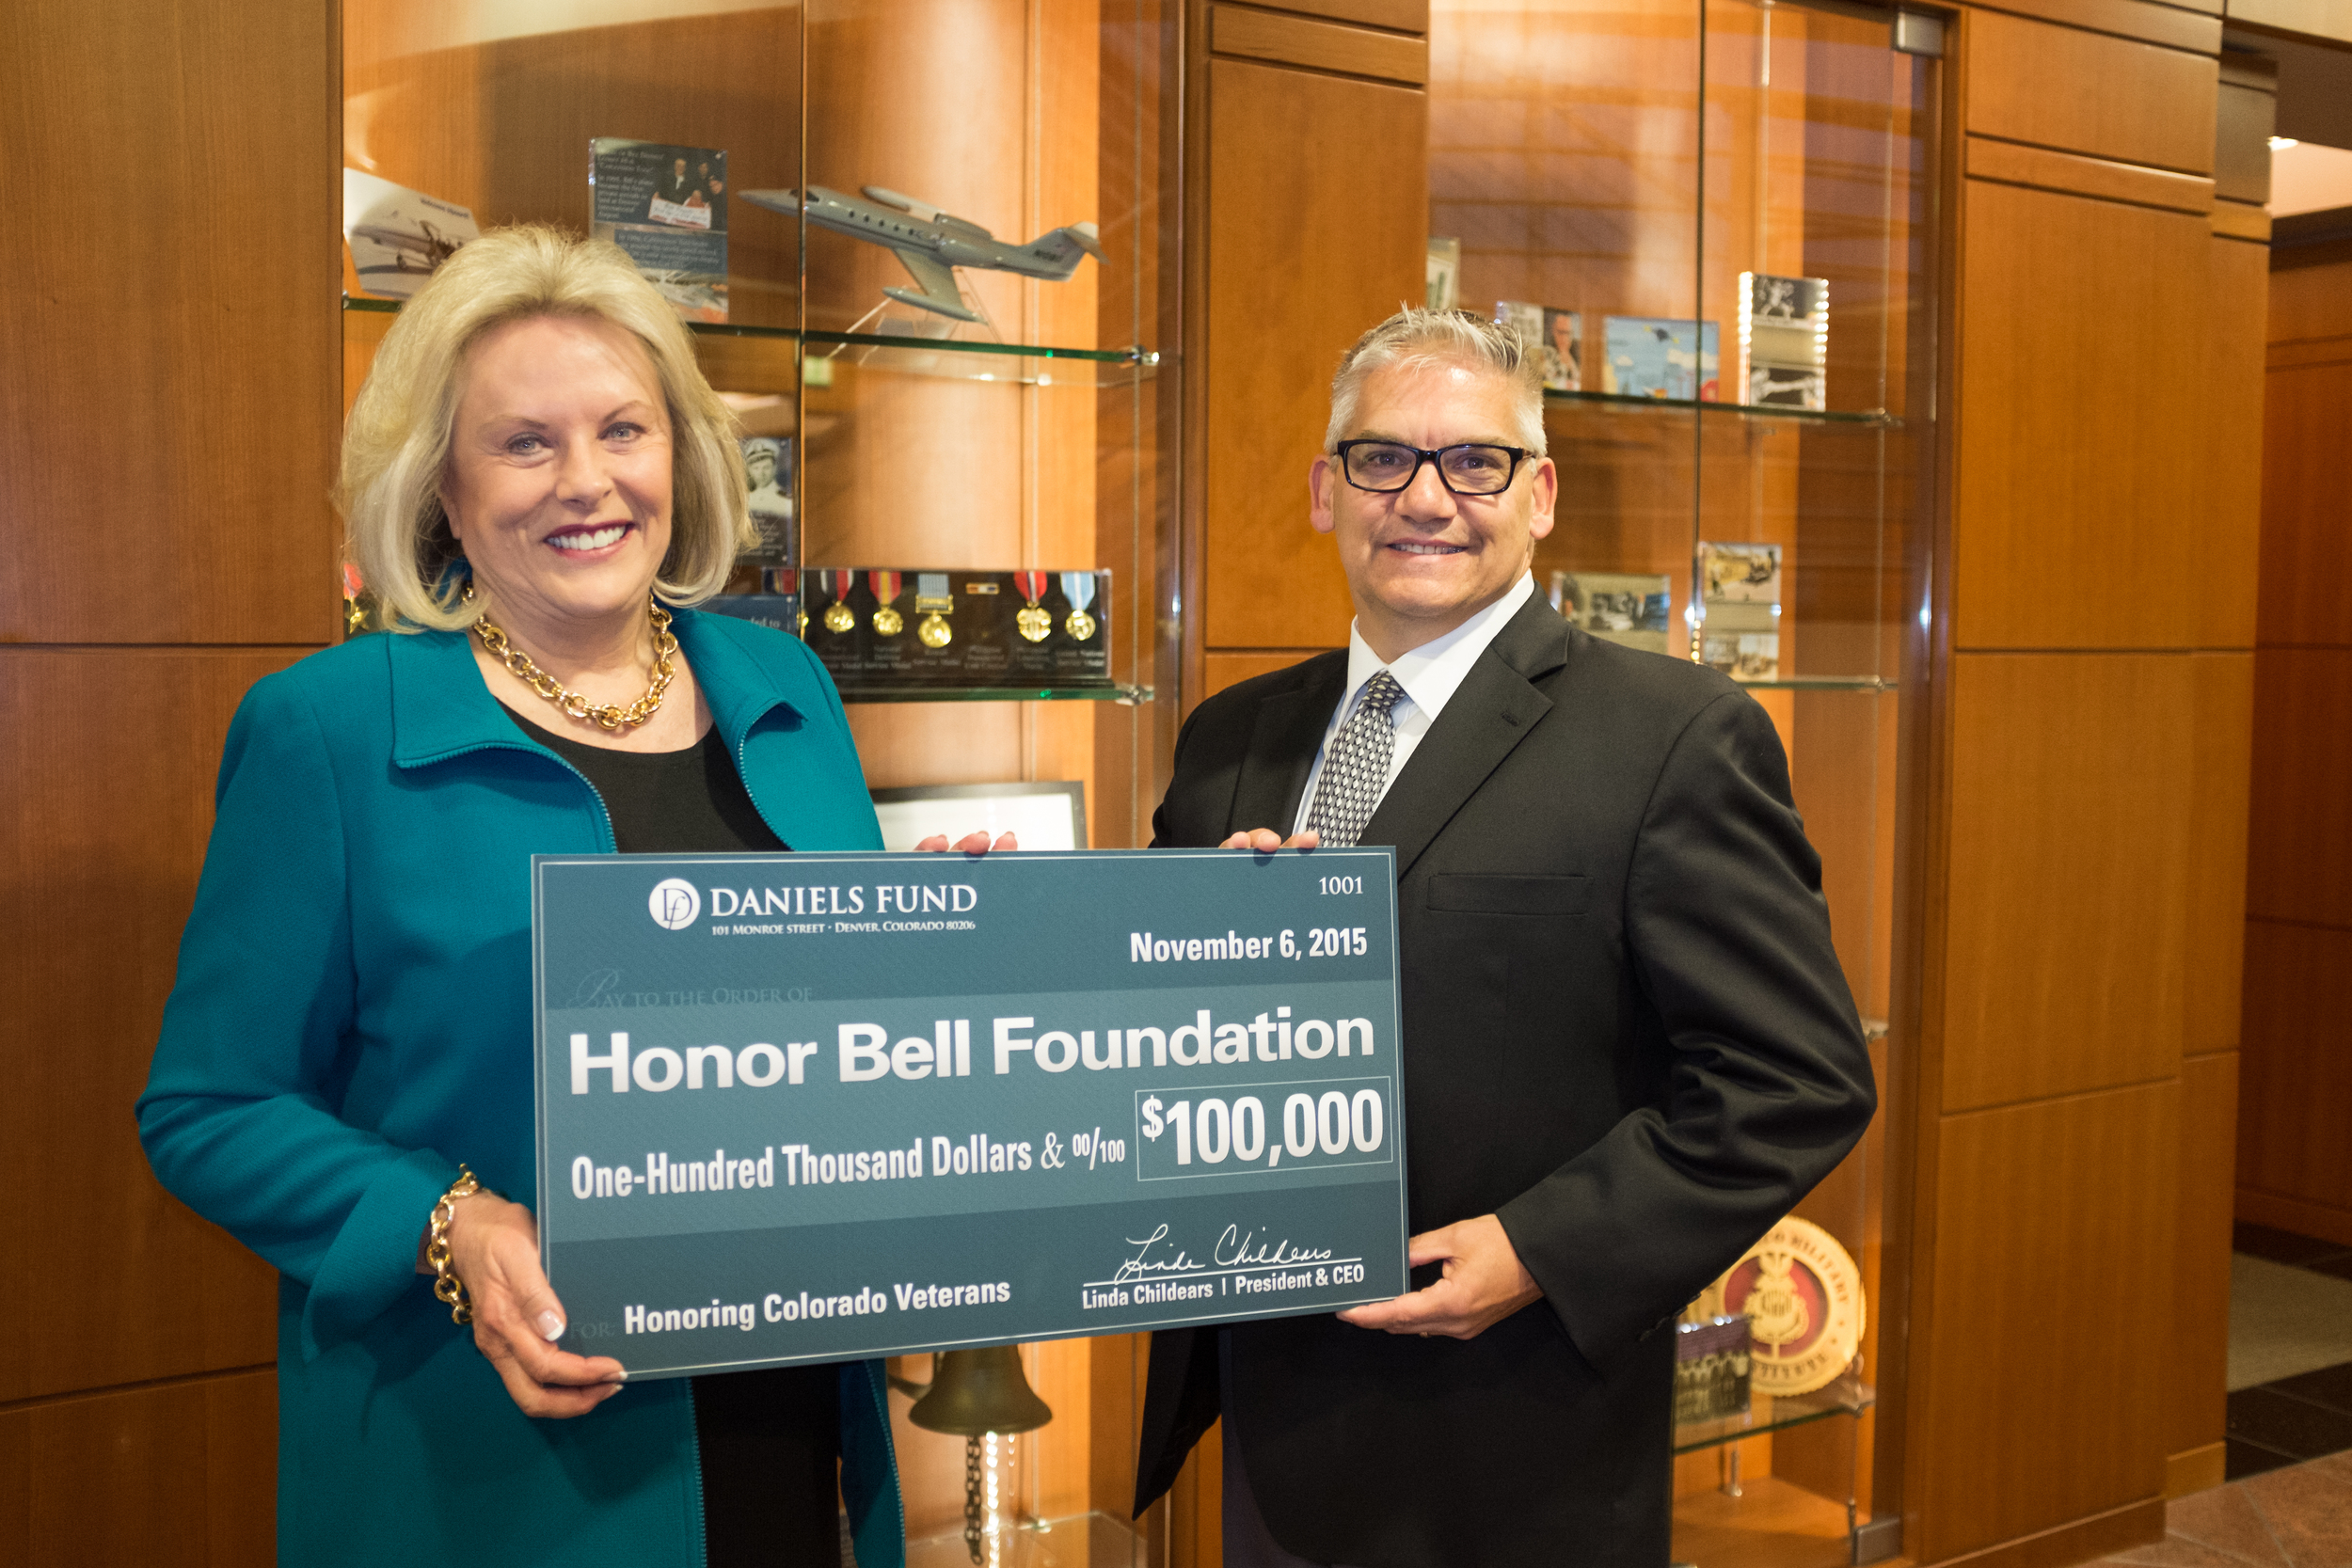 Daniels Fund President and CEO Linda Childears and Foundation Executive Director Lou Olivera